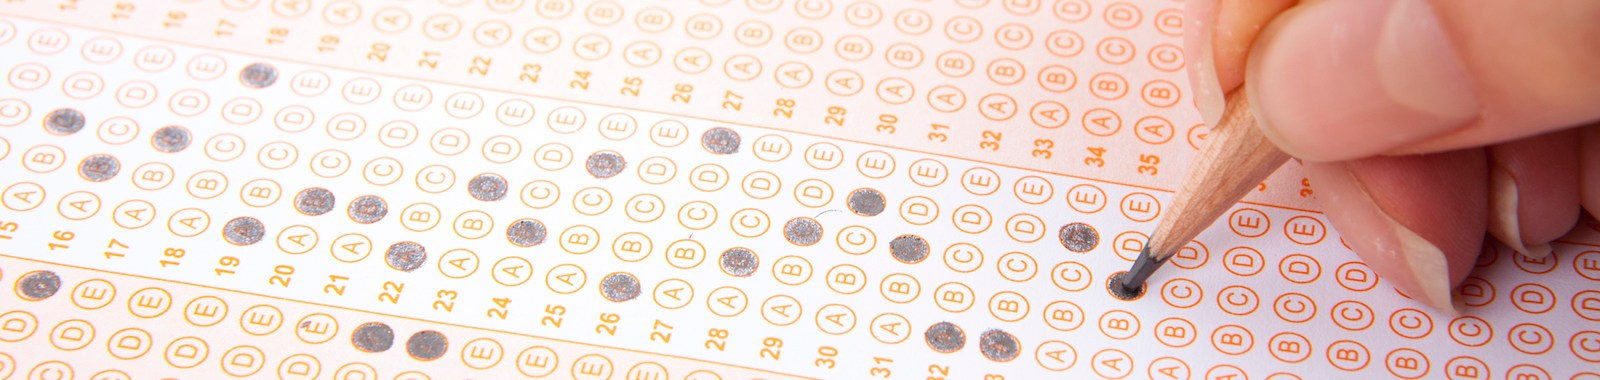 Hand on pencil choosing the test list on the examination.